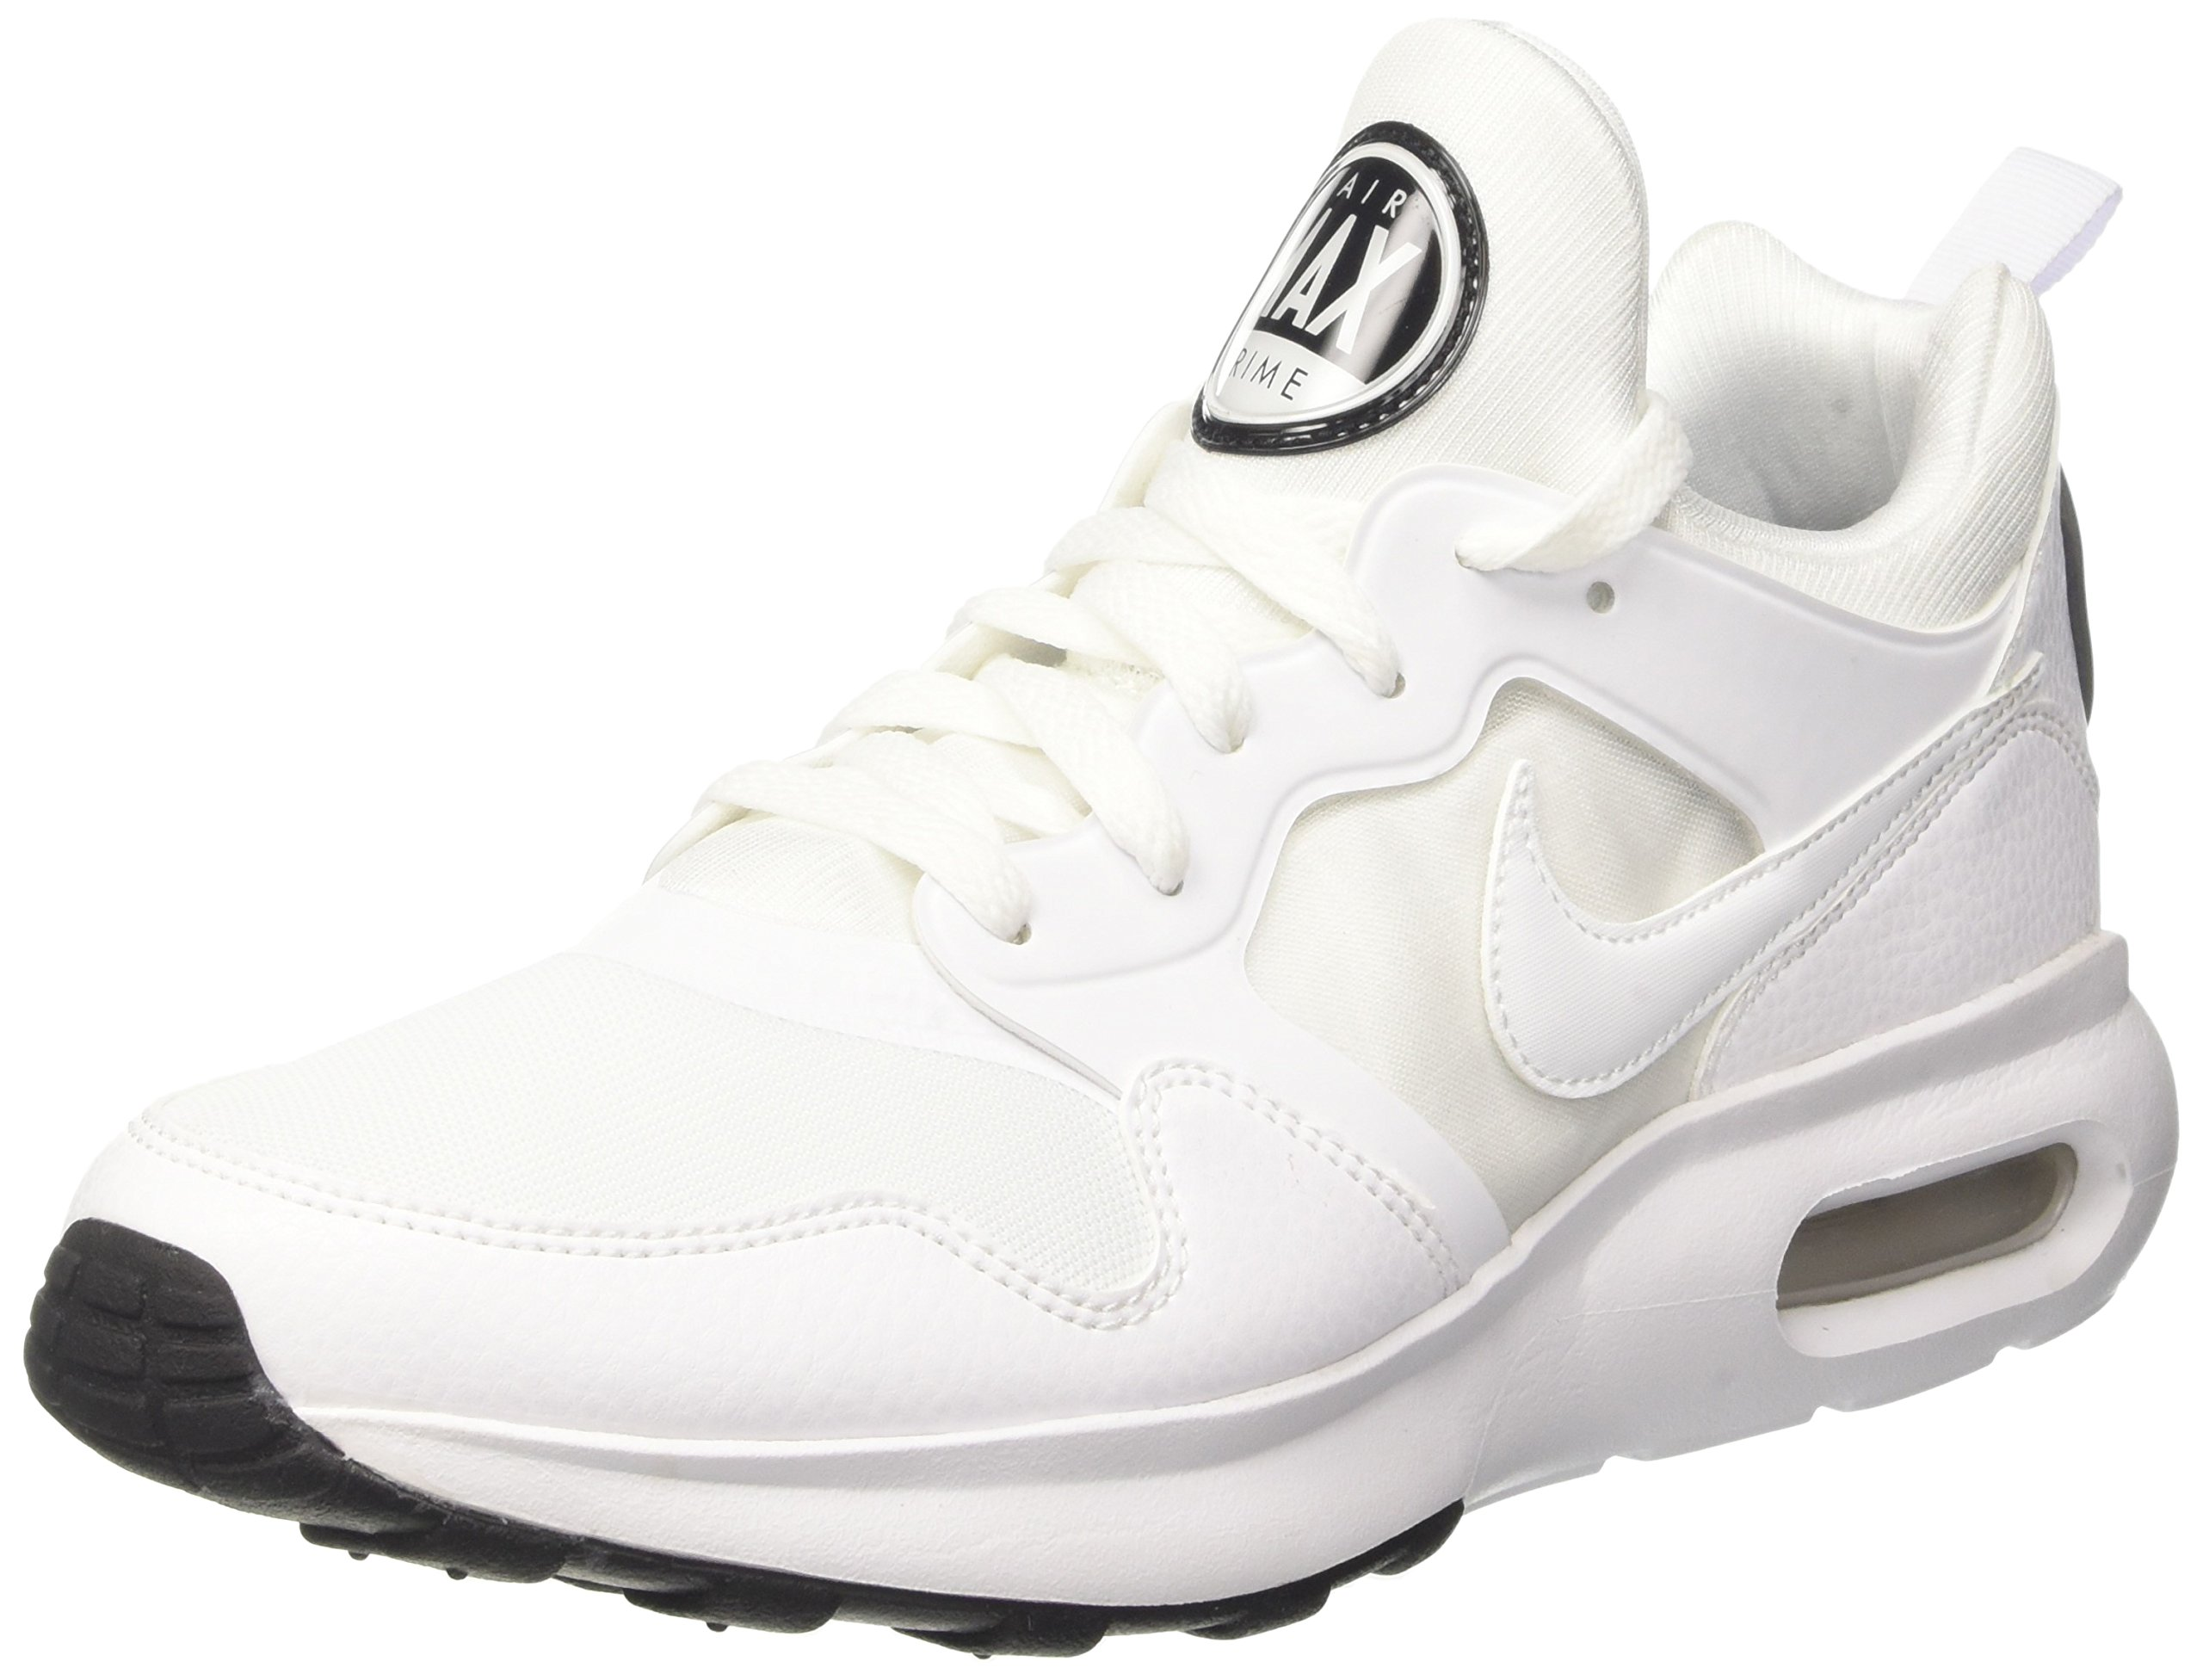 Galleon - Nike Men s Air Max Prime Running Shoe White White-Pure Platinum- Black 10.5 ffb888a2e